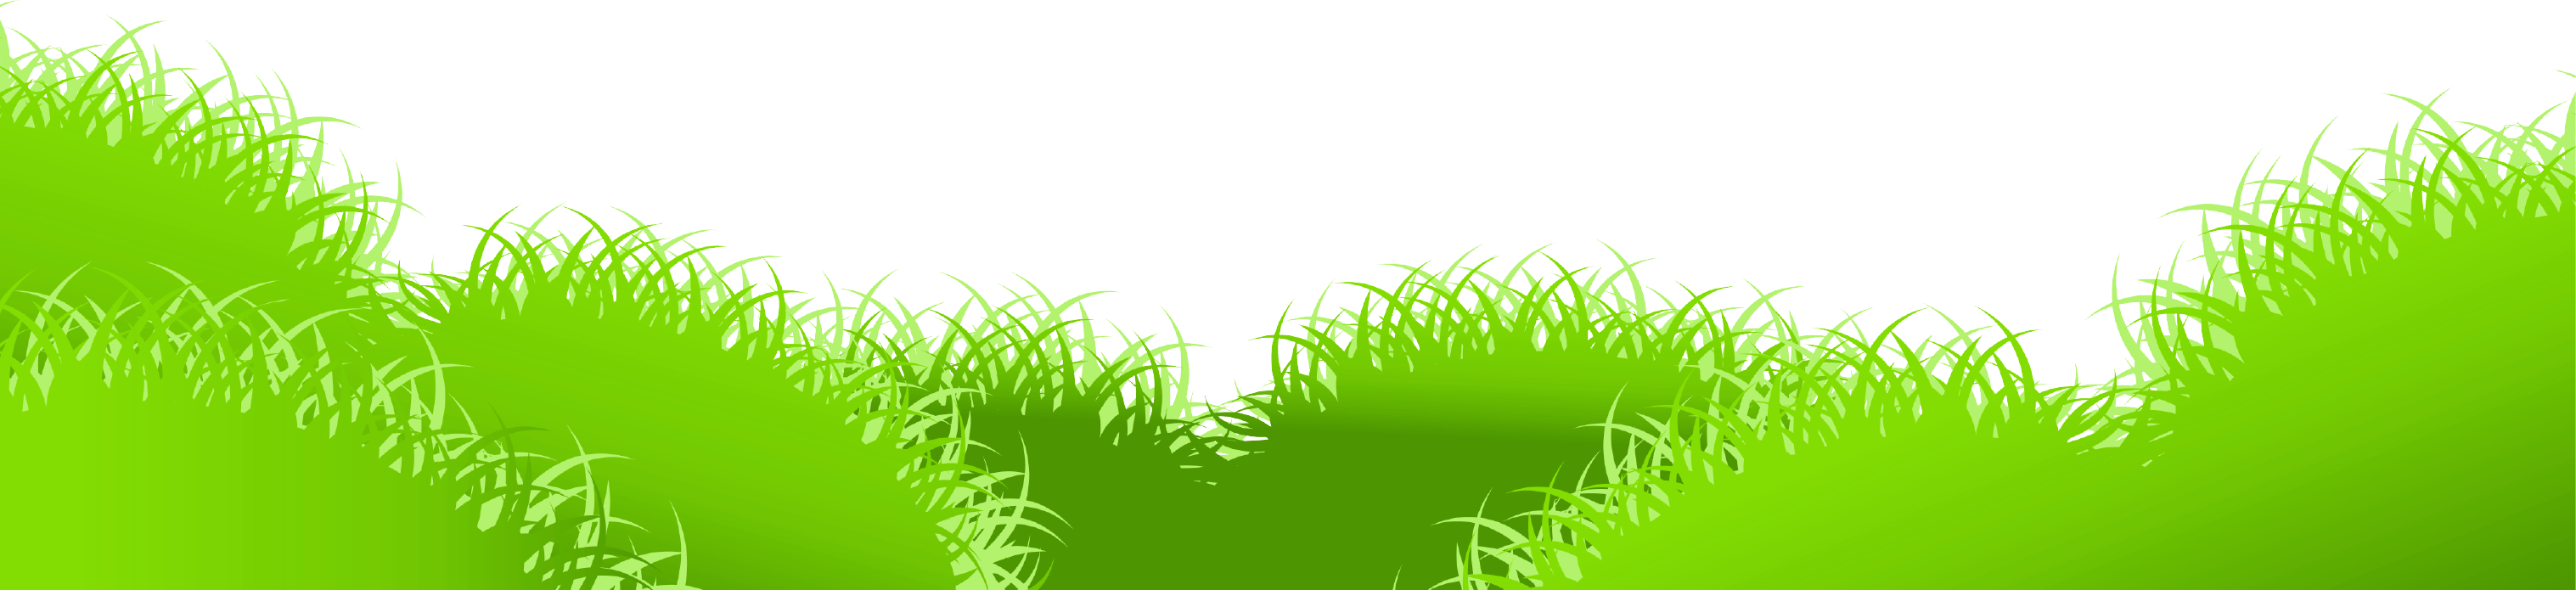 Grass graphic clipart jpg library library Free Grass Clip Art Pictures - Clipartix jpg library library